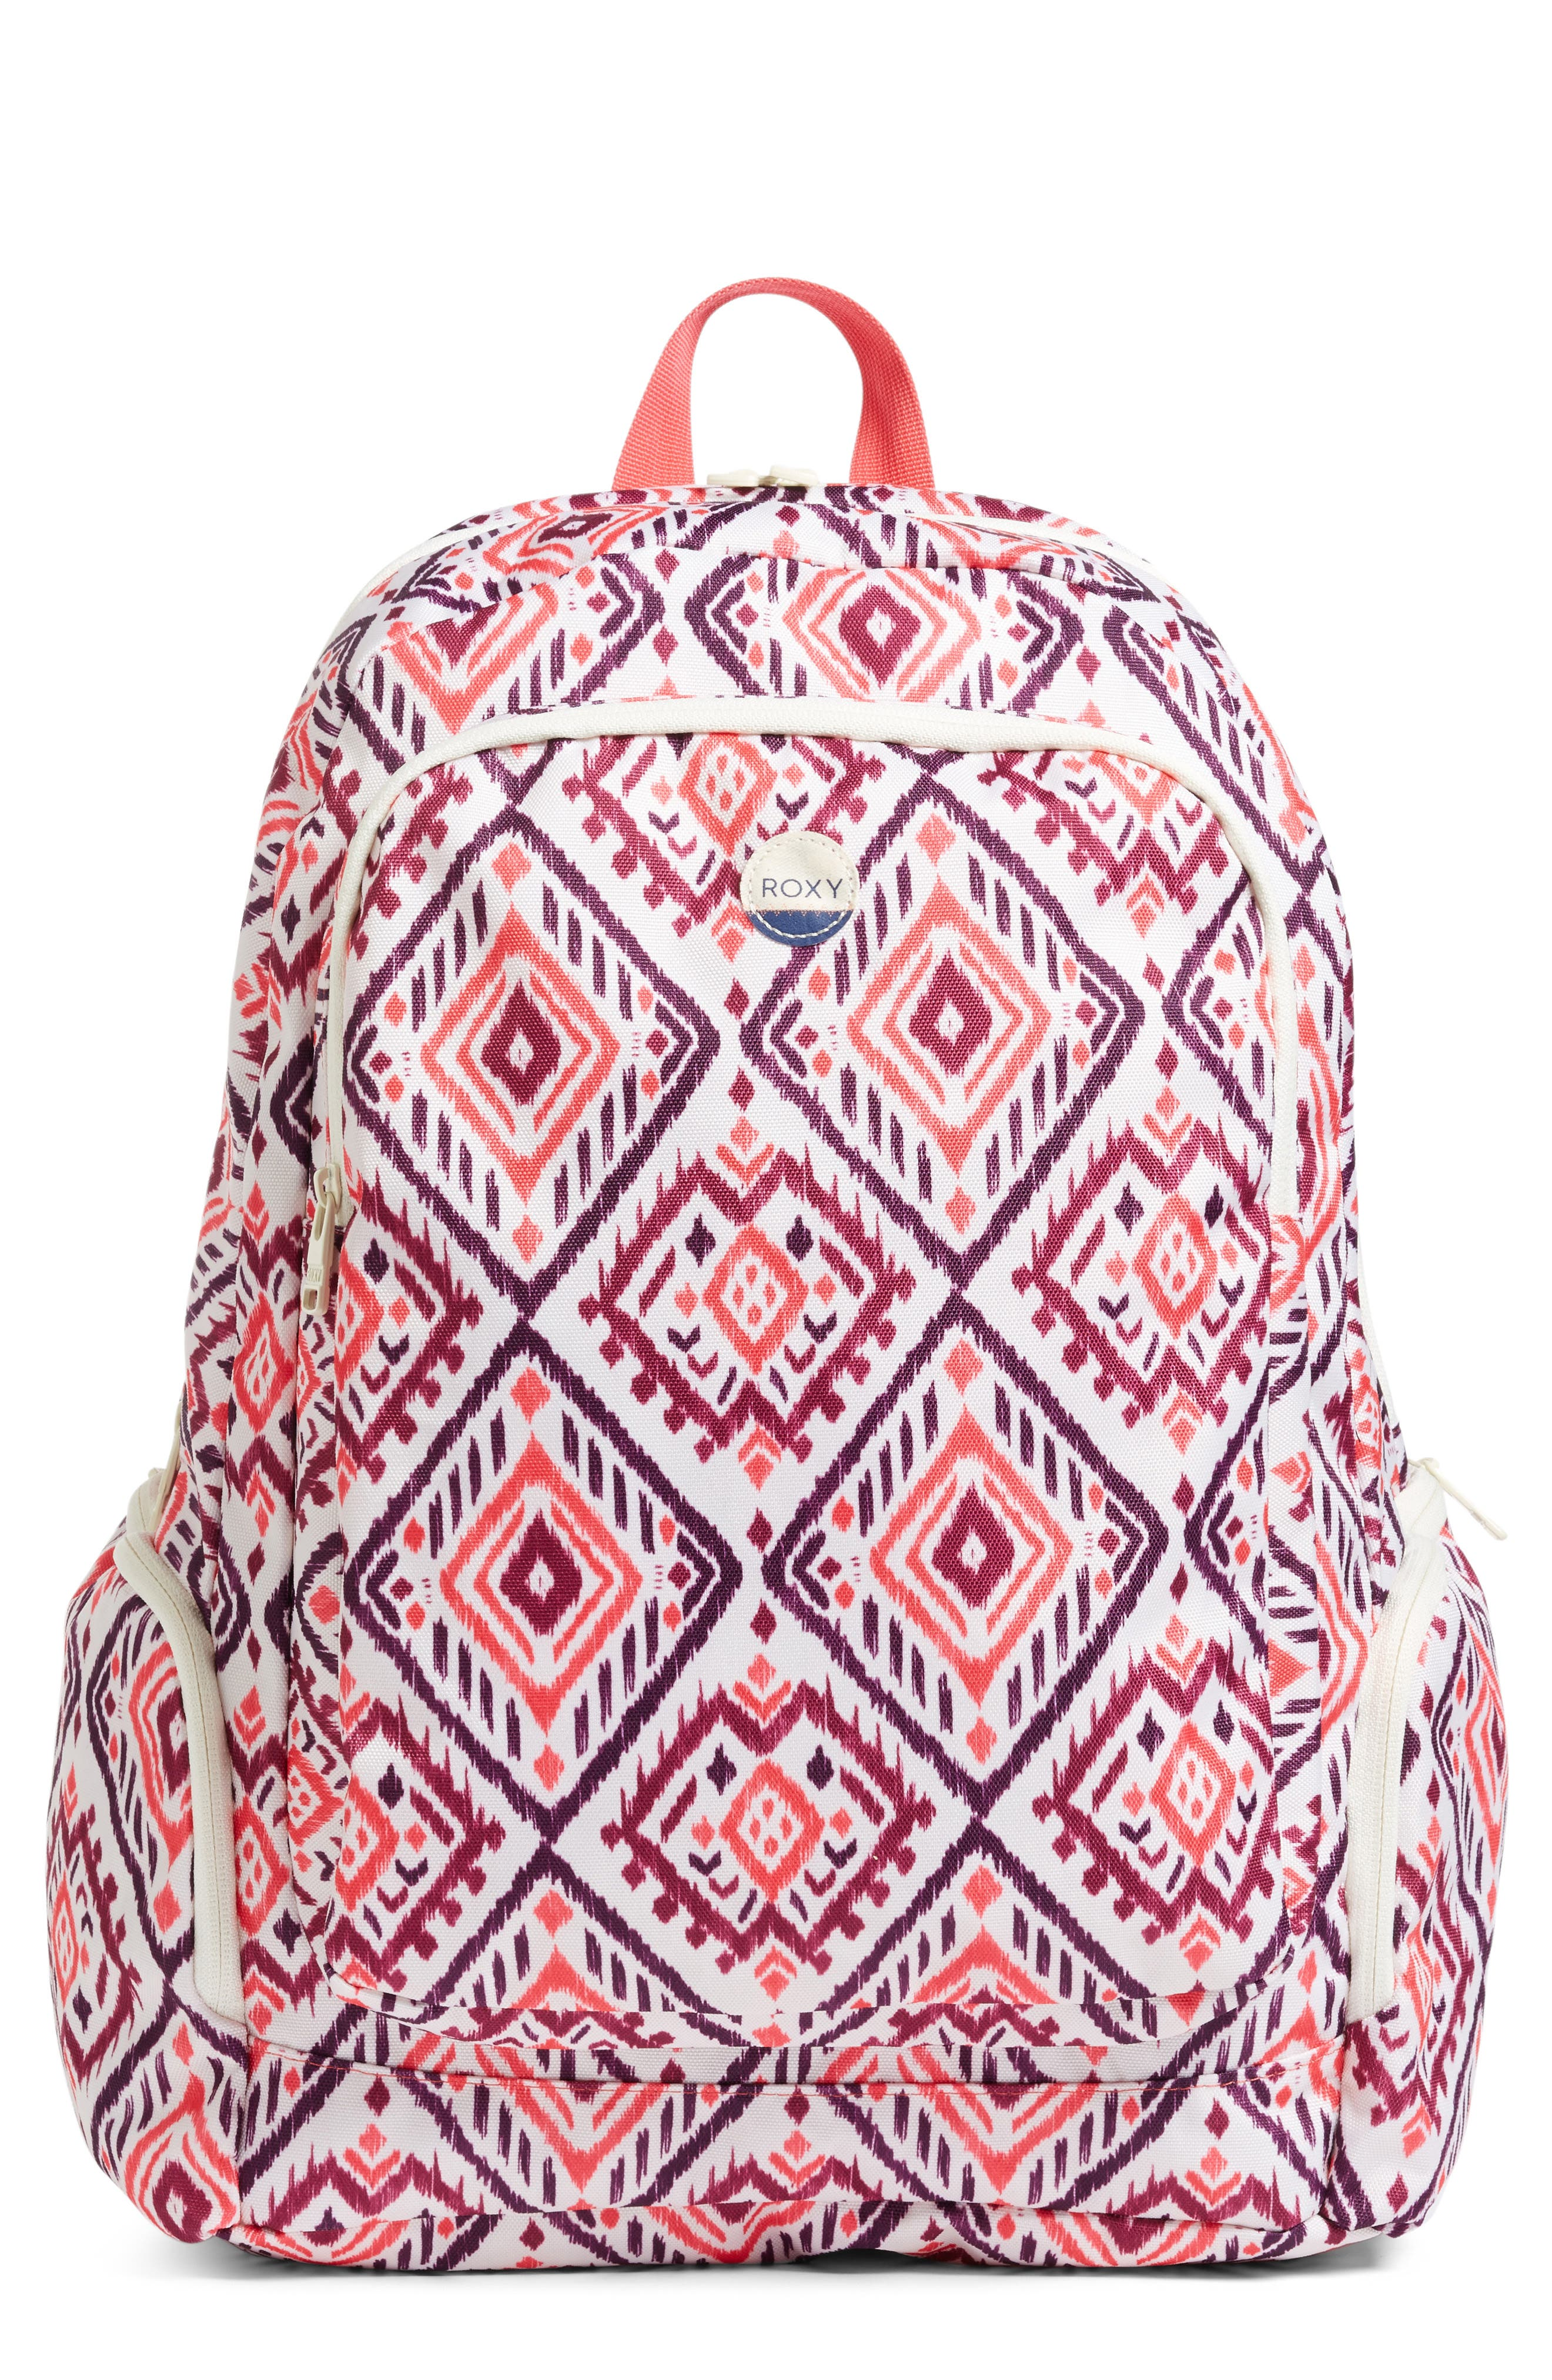 Main Image - Roxy Alright Print Backpack